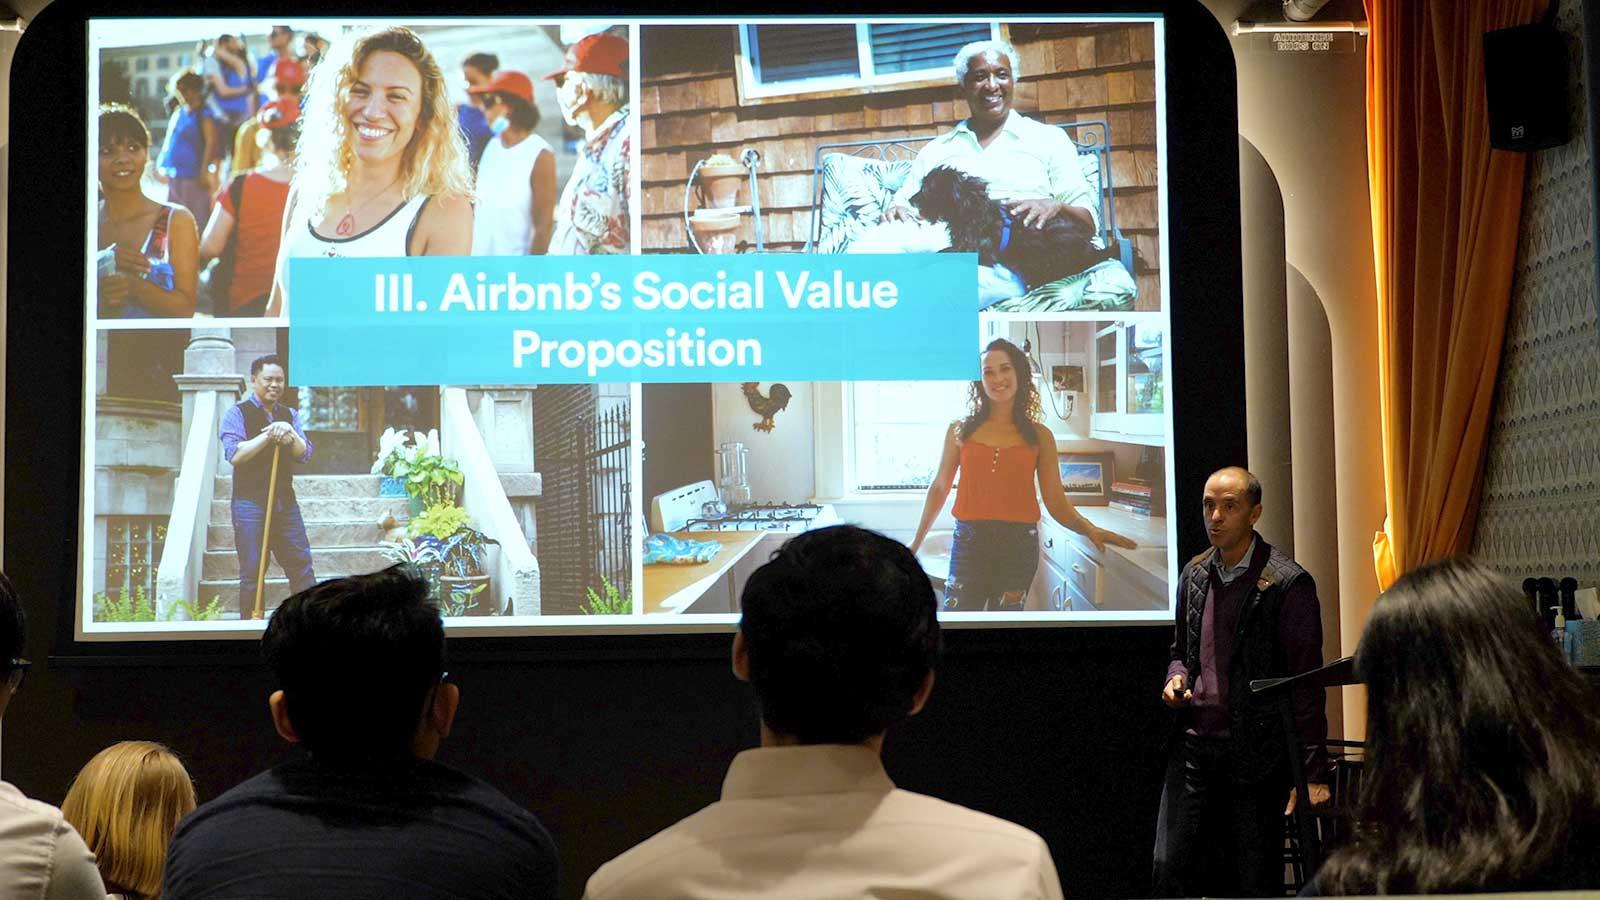 Chris Lehane '90 giving a presentation about Airbnb